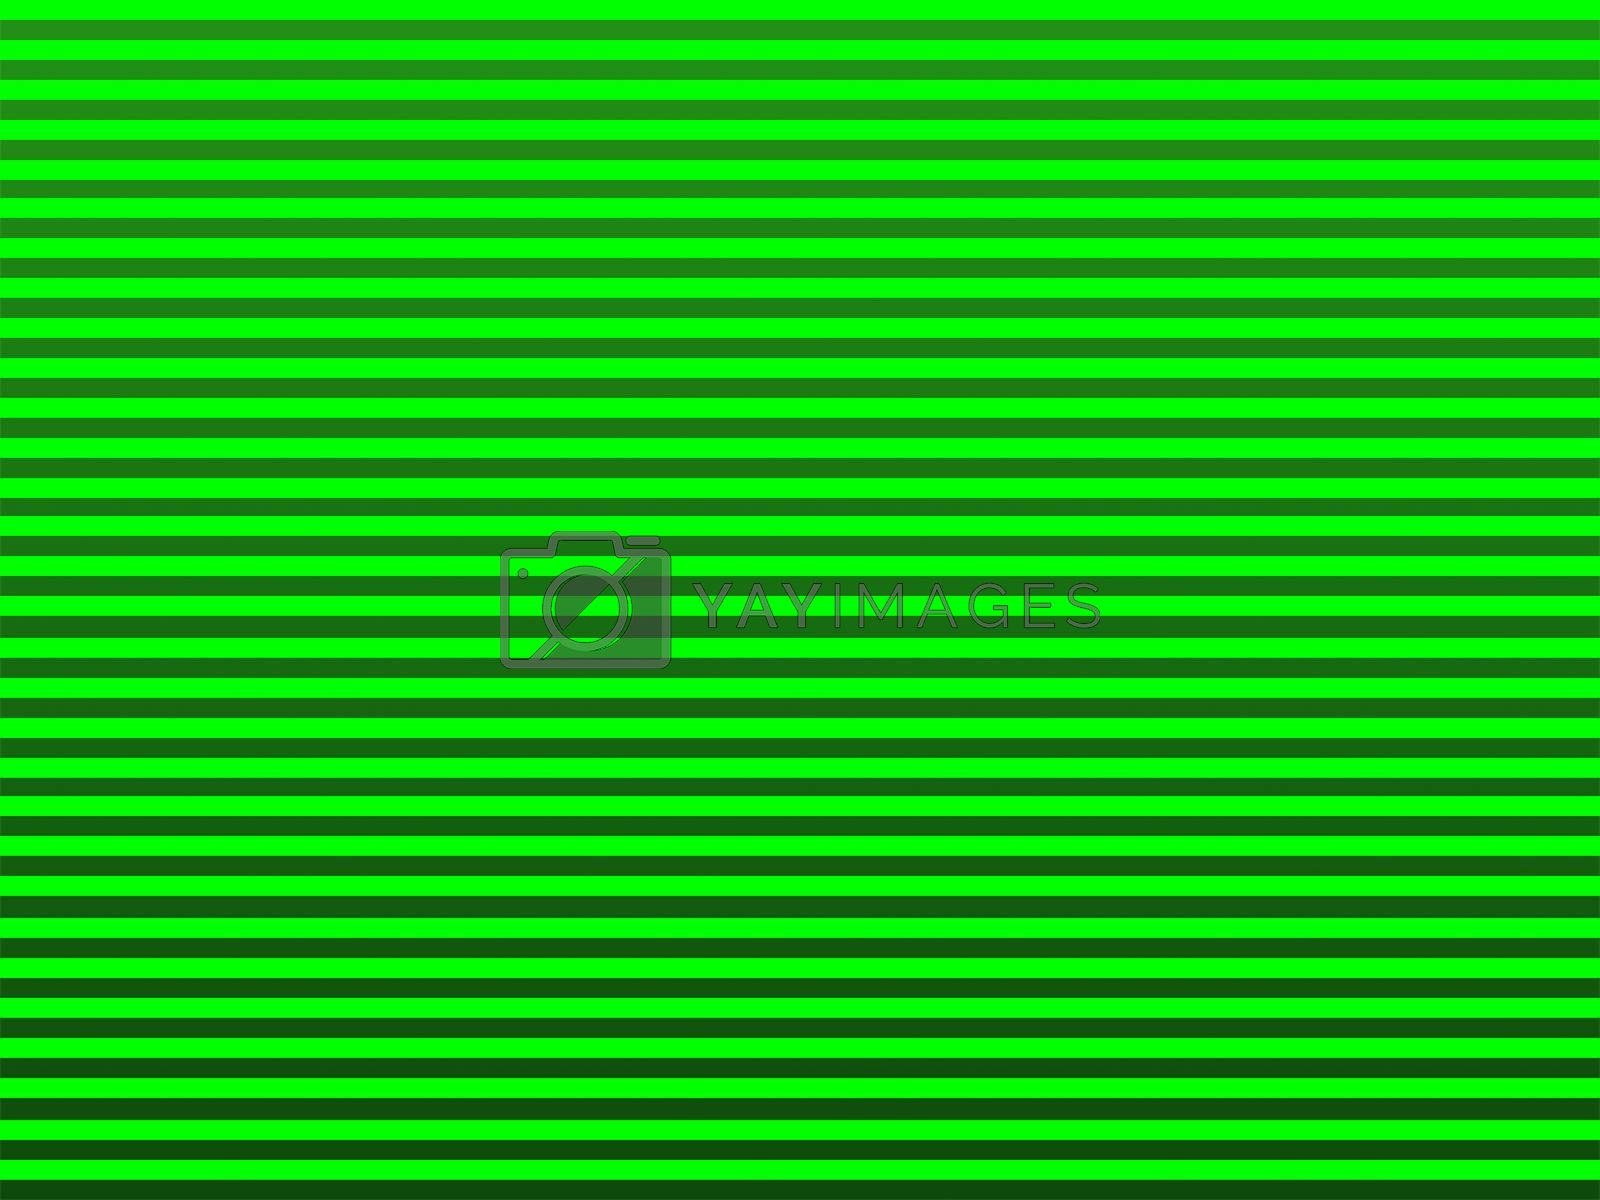 green street line abstract on green tone background